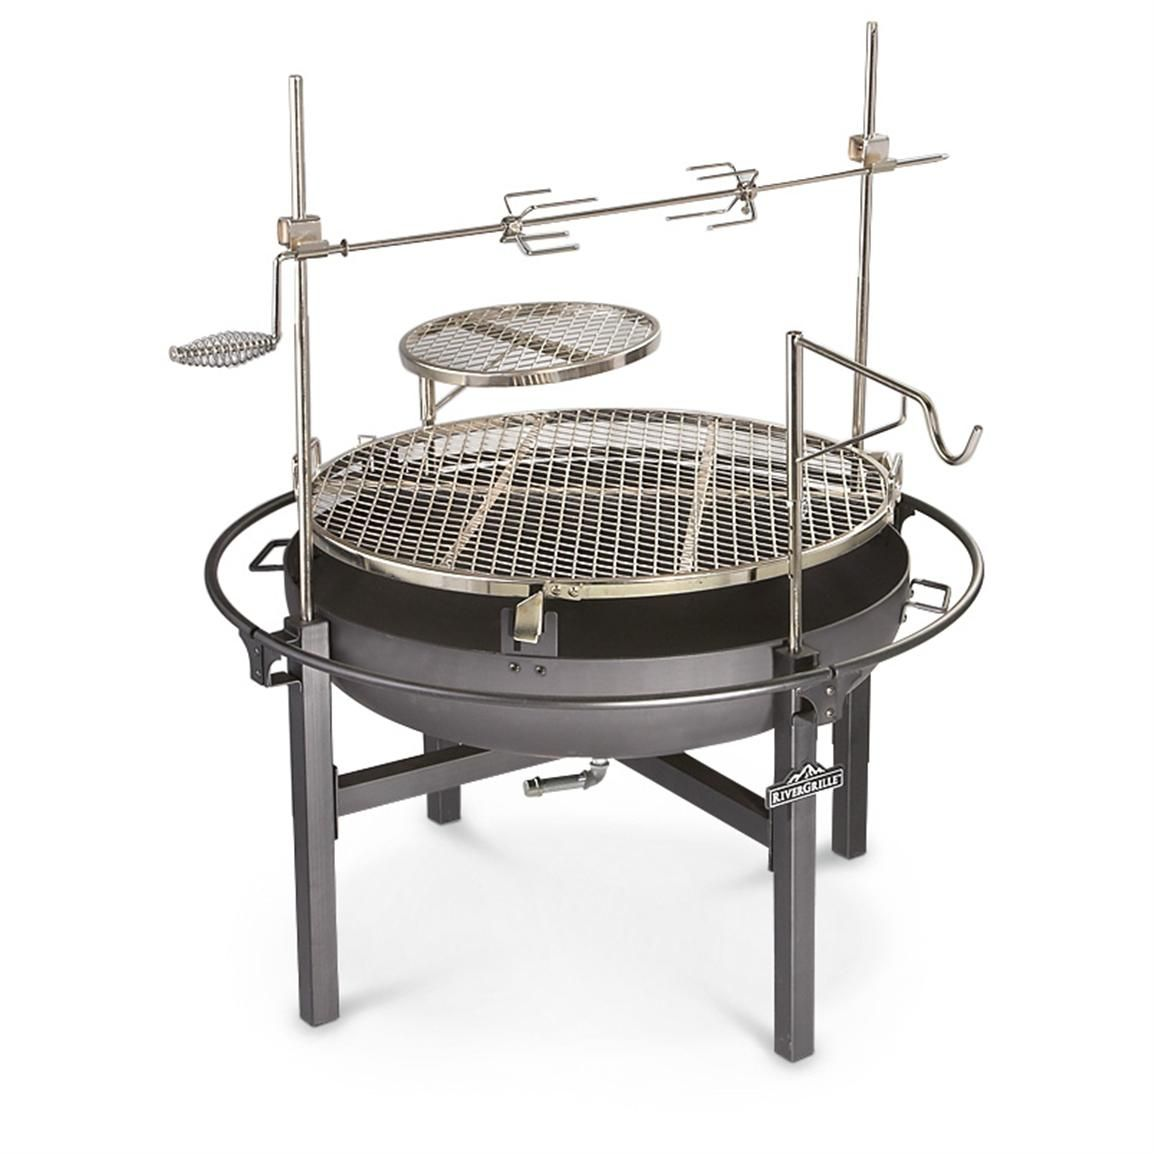 Cowboy Grill Durable Double Nickel Plated Cooking Grate With